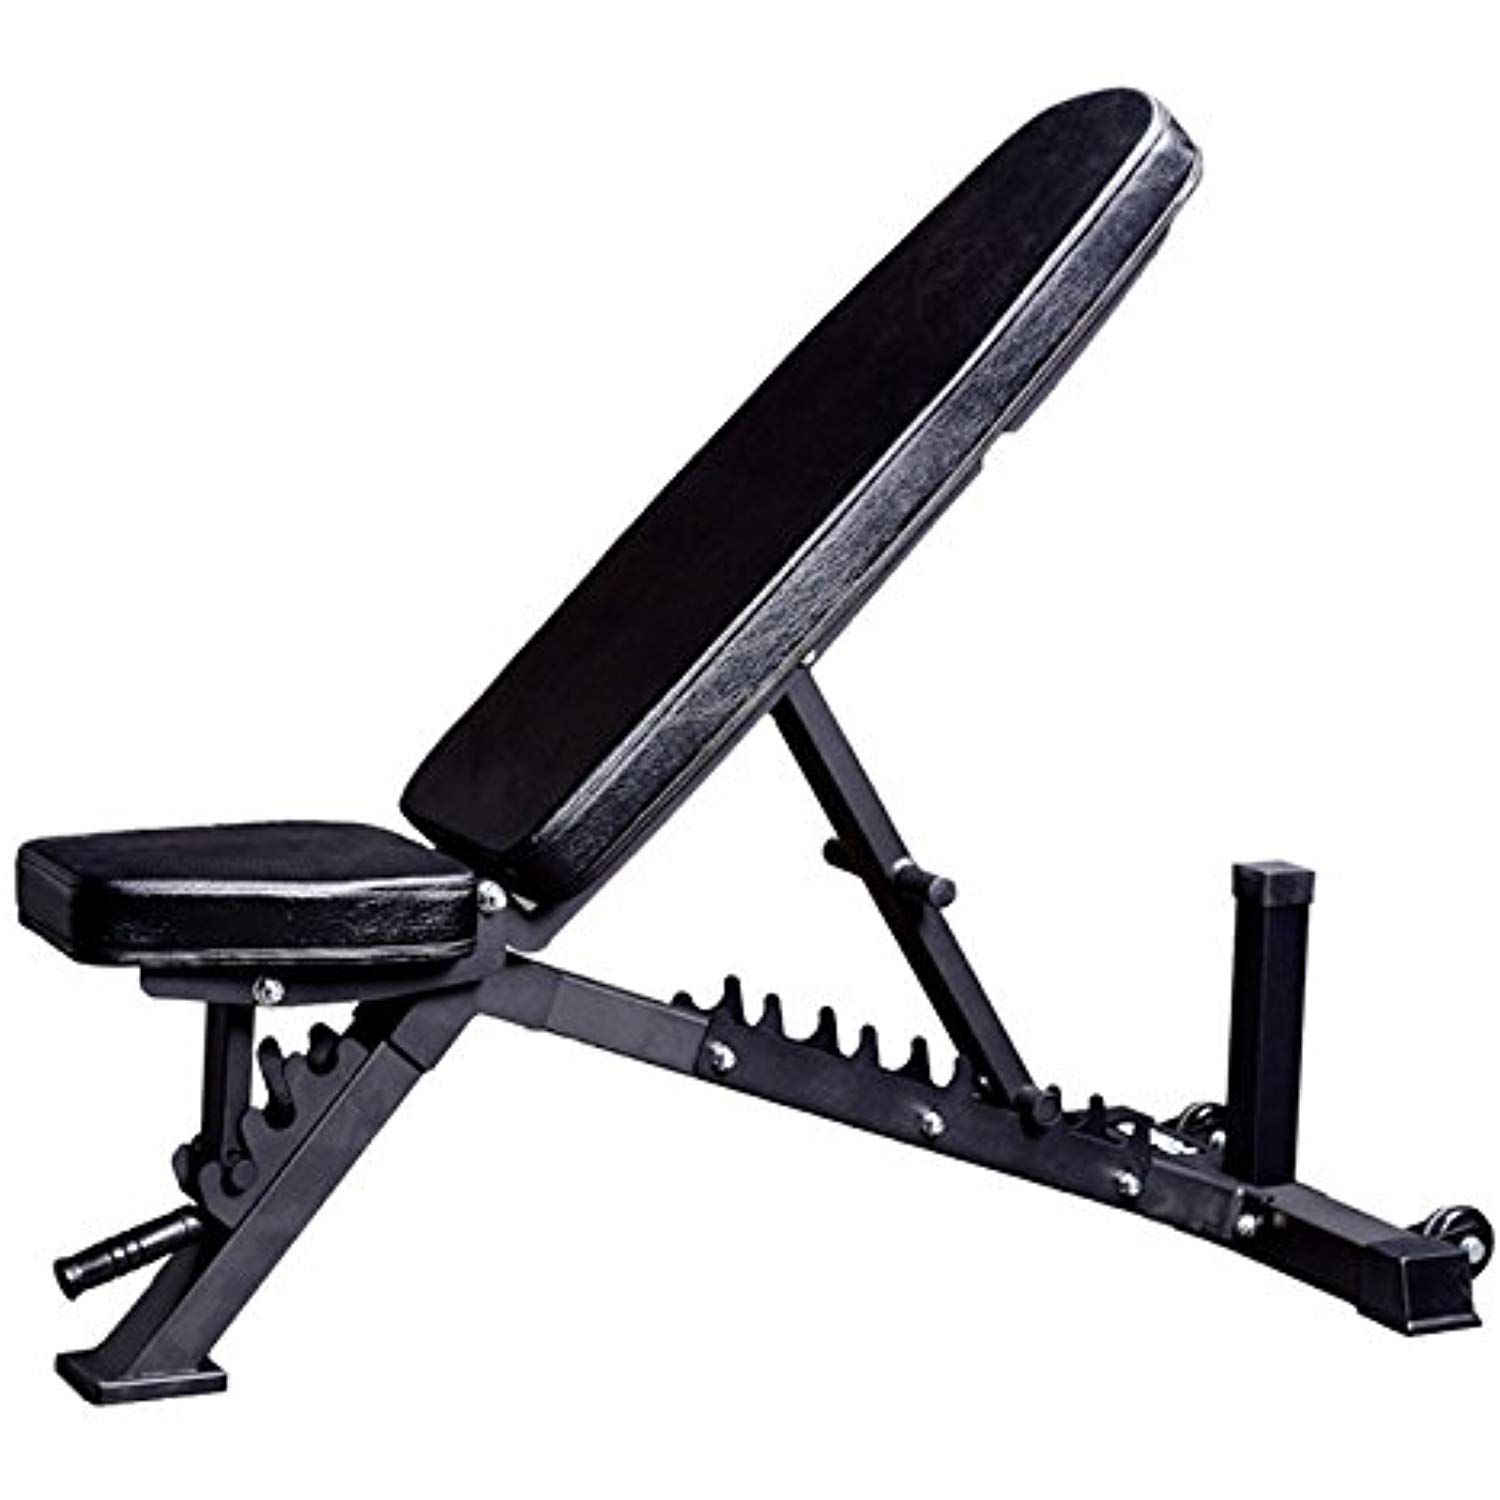 Rep Adjustable Bench Ab 3100 V3 A 1 000 Lb Rated For Home And Garage Gym Workouts Weight Lift Exercise Bikes Recumbent Bike Workout Adjustable Weight Bench